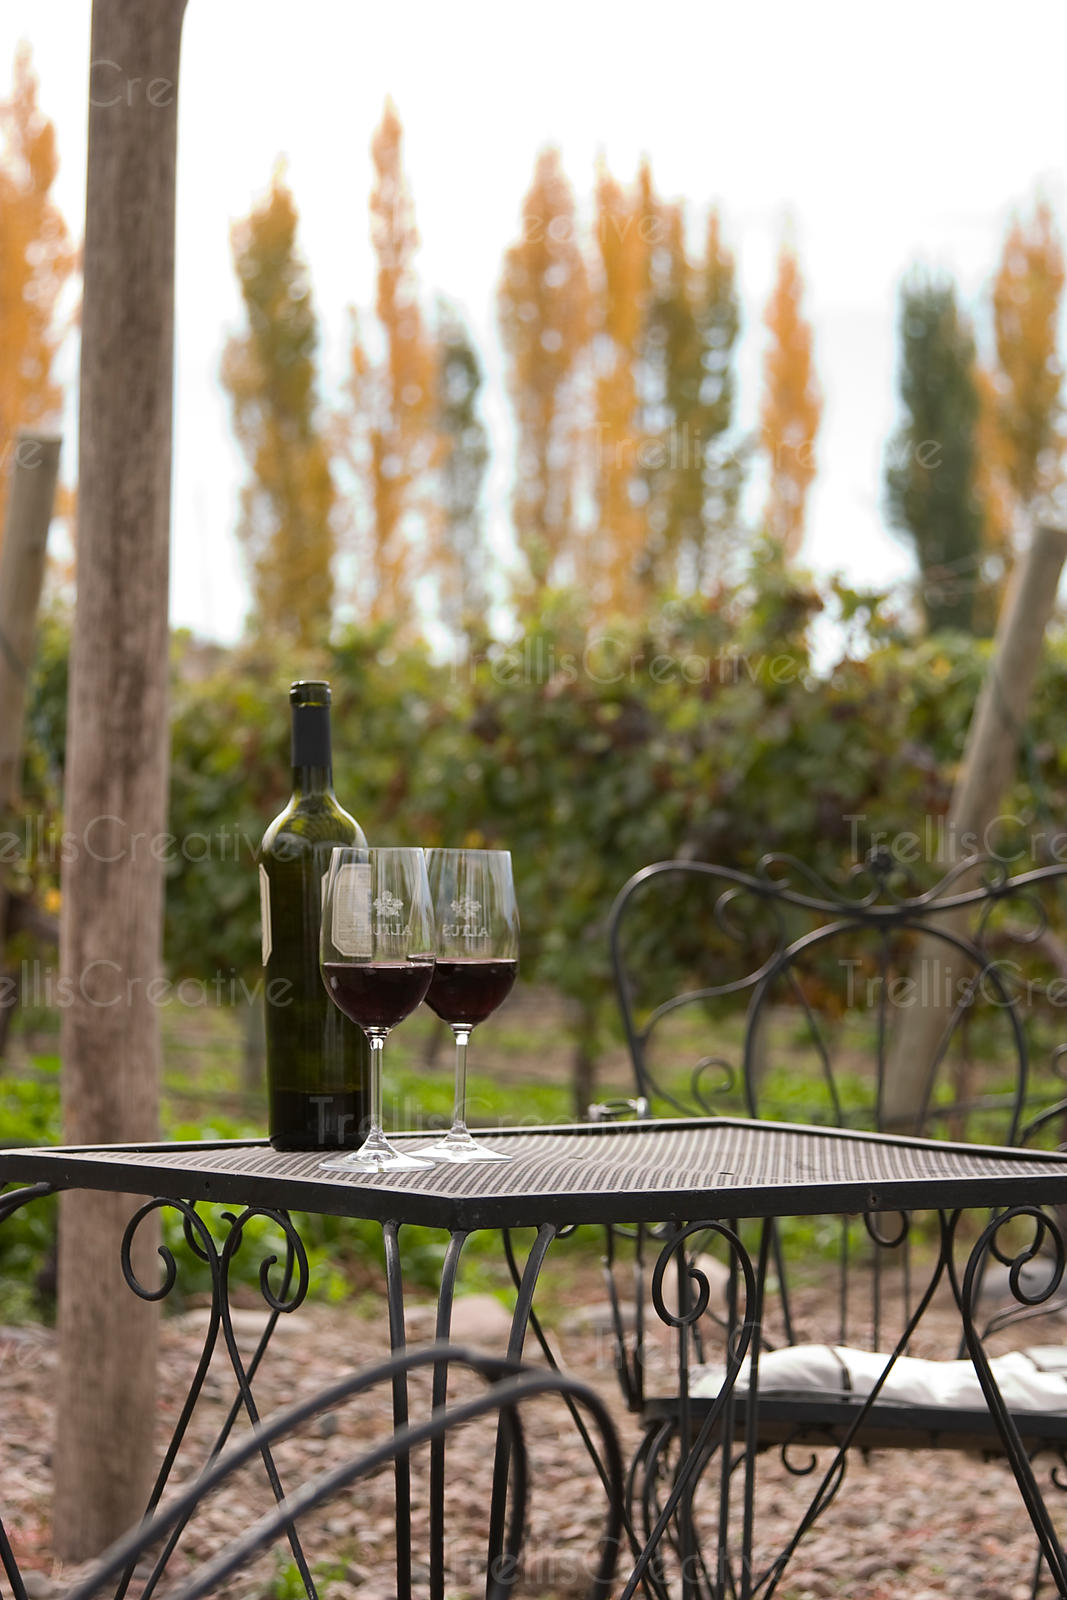 A bottle and two glasses of wine on a patio table